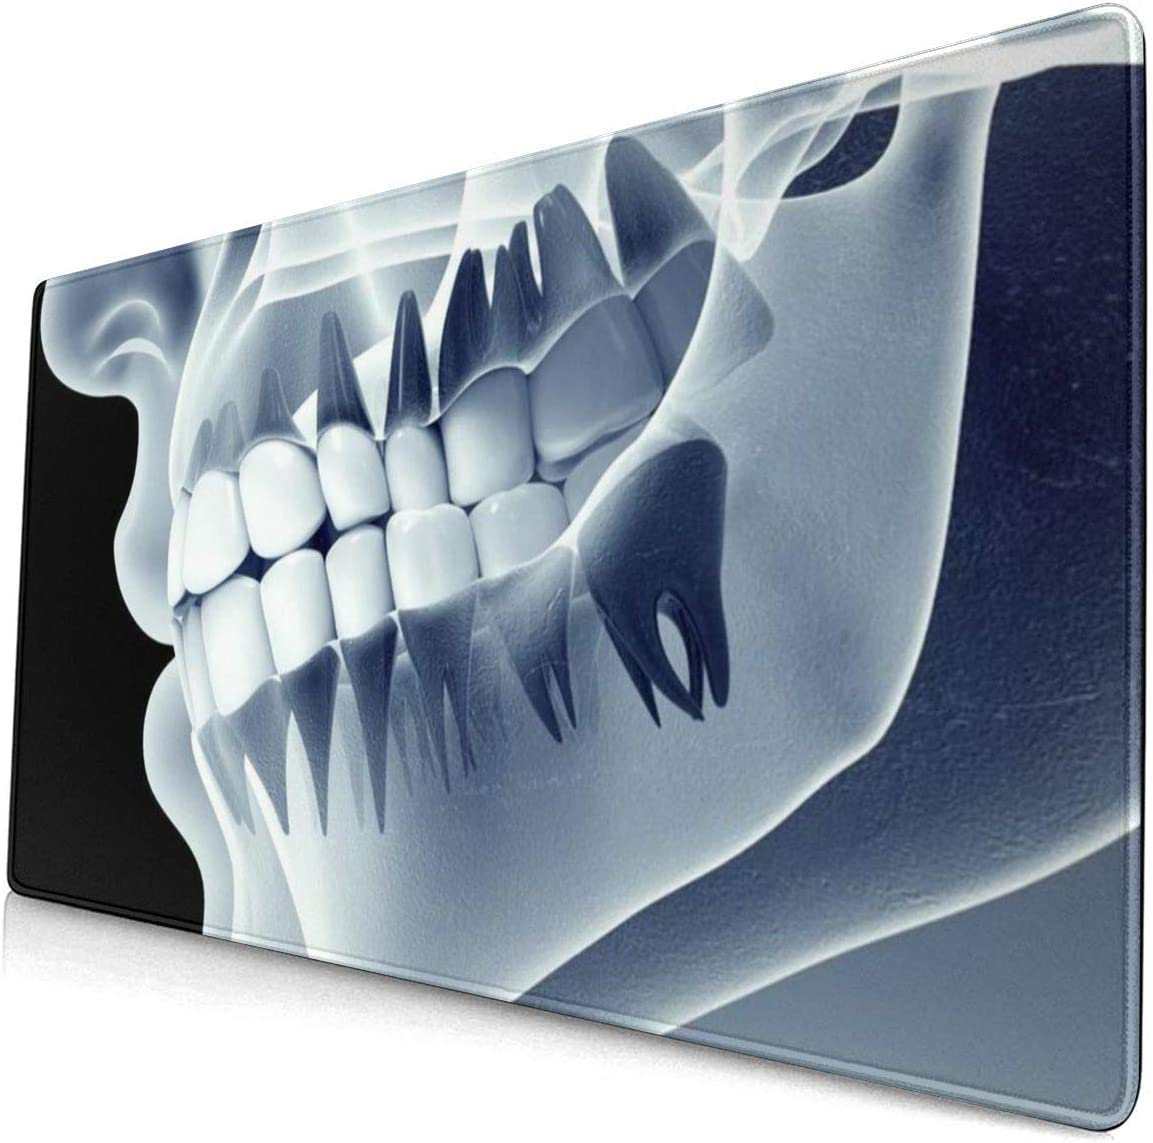 Mouse Pad Non-Slip Rubber Max Credence 87% OFF Gaming Xray Ray X Jaw of Tee